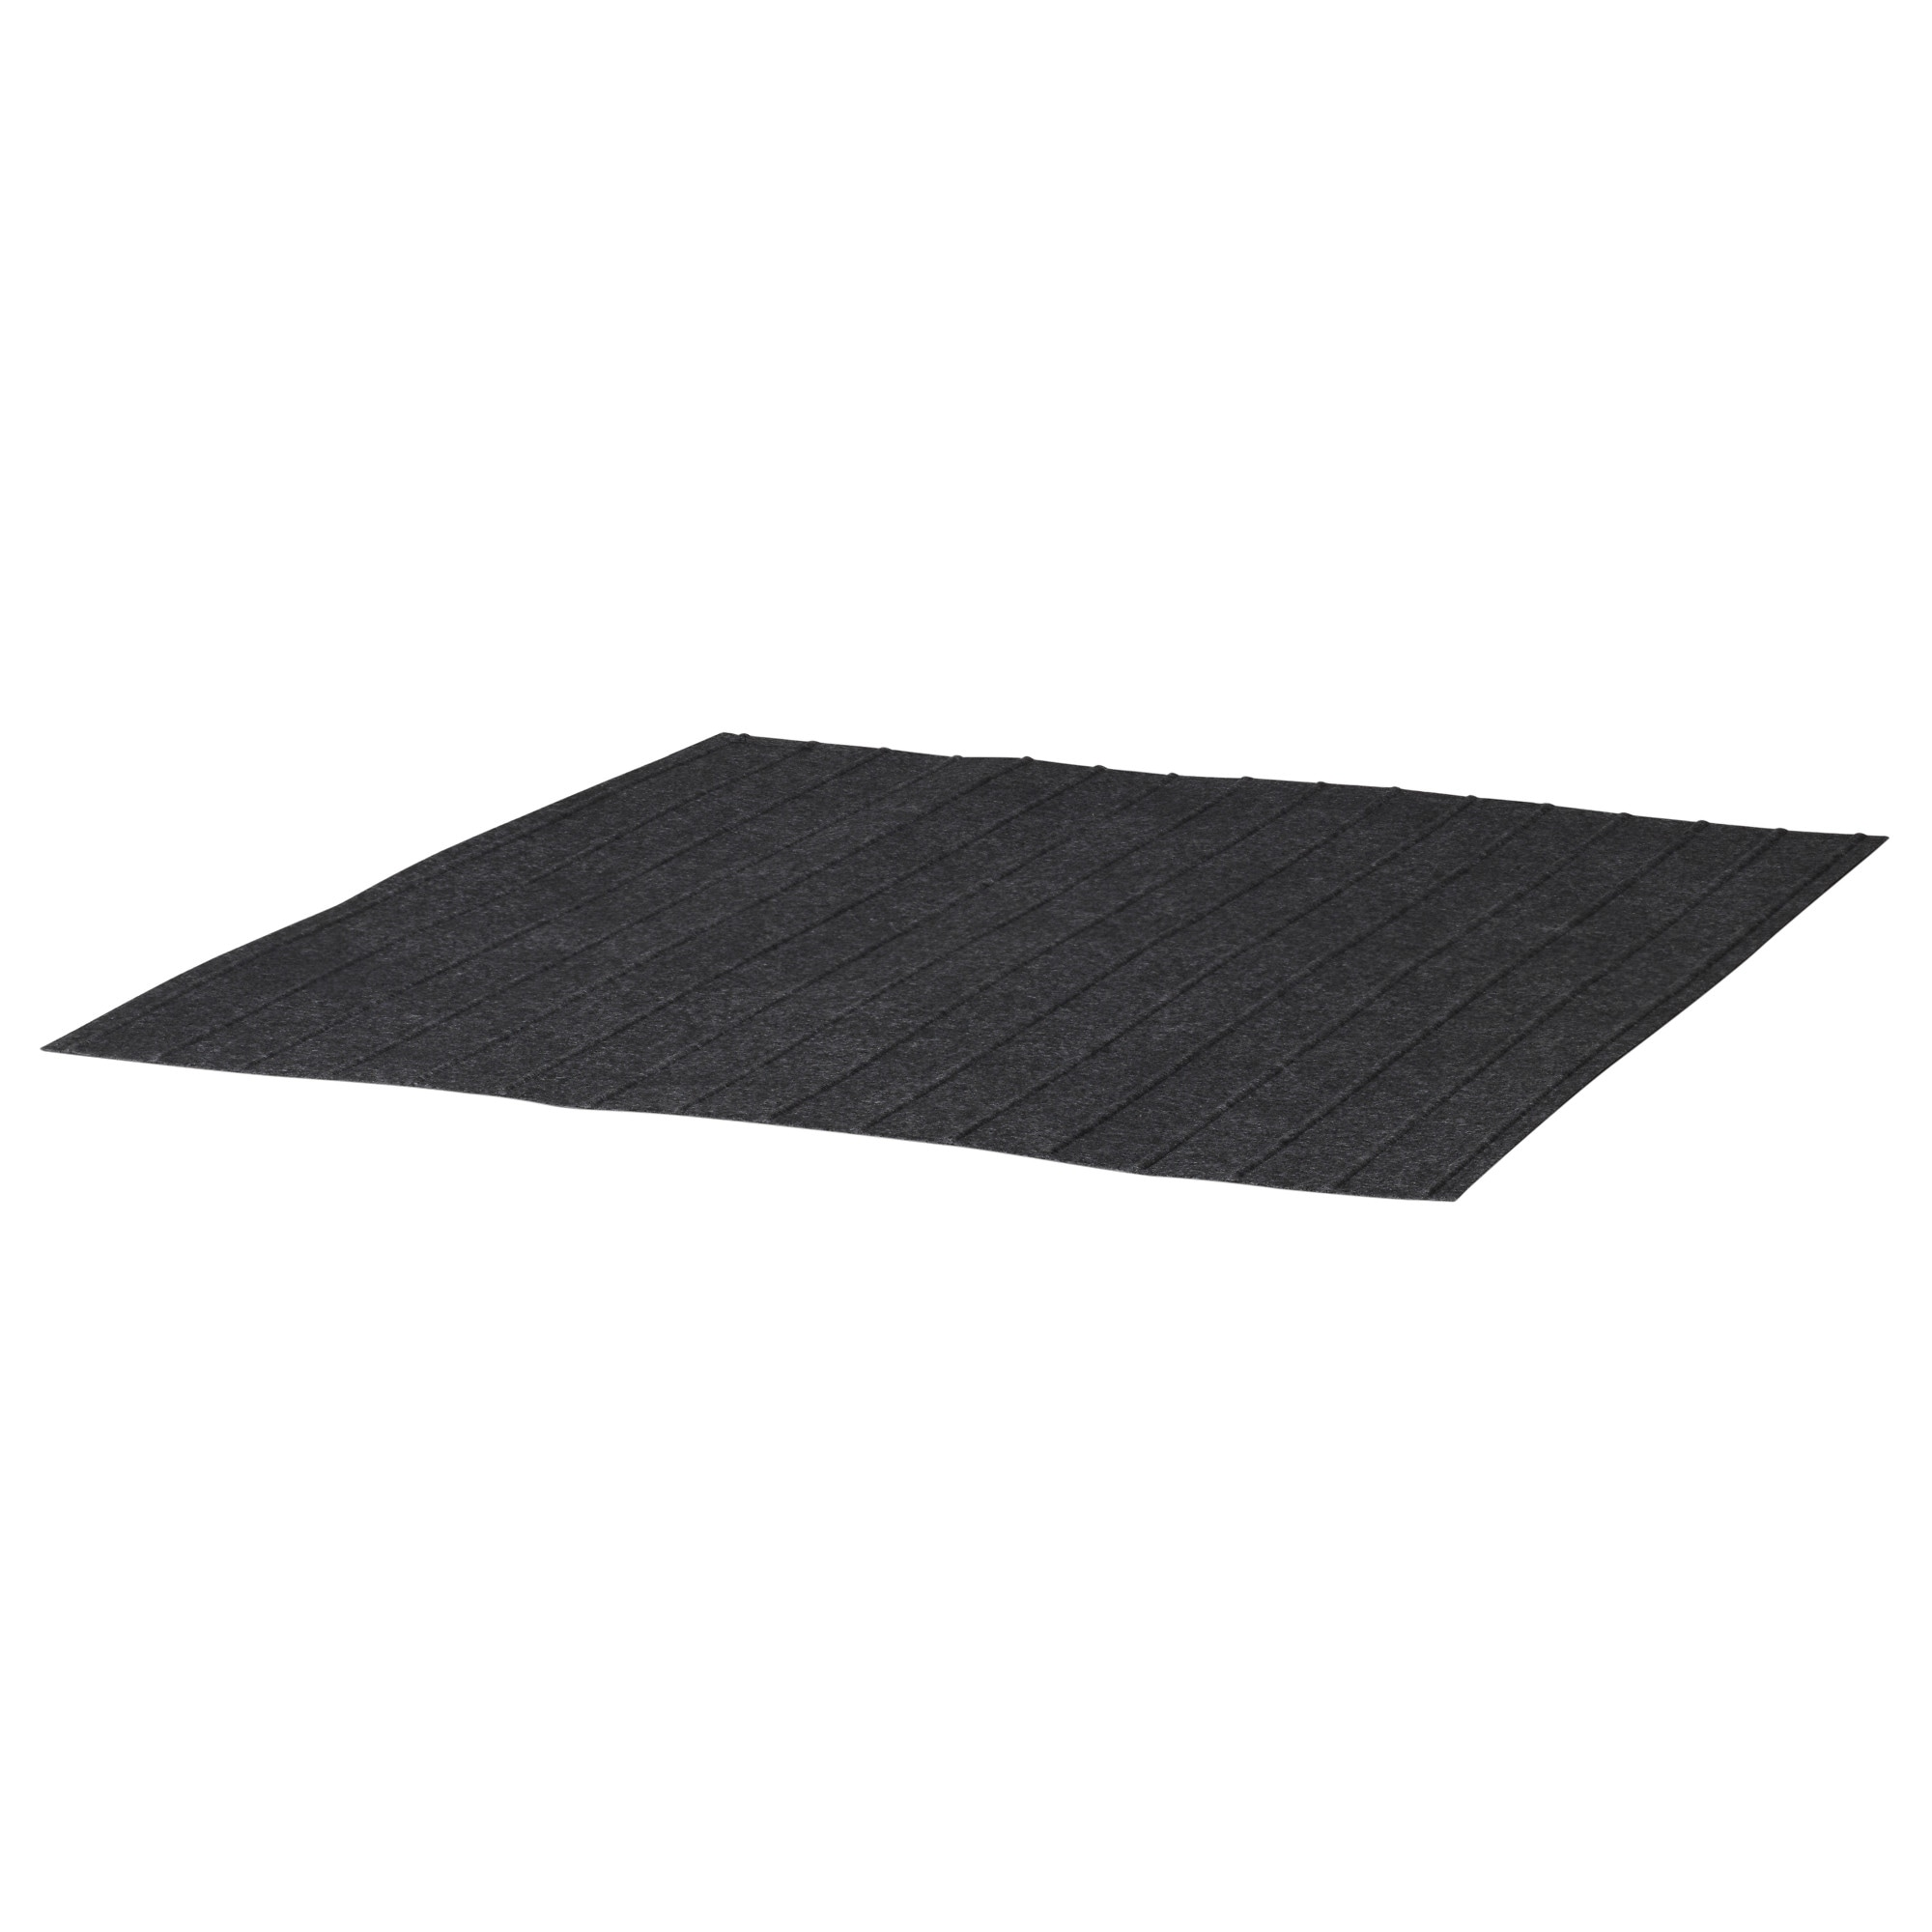 floor cord cover nz white neoprene floor cord cover and protector in use with cables icon cord. Black Bedroom Furniture Sets. Home Design Ideas